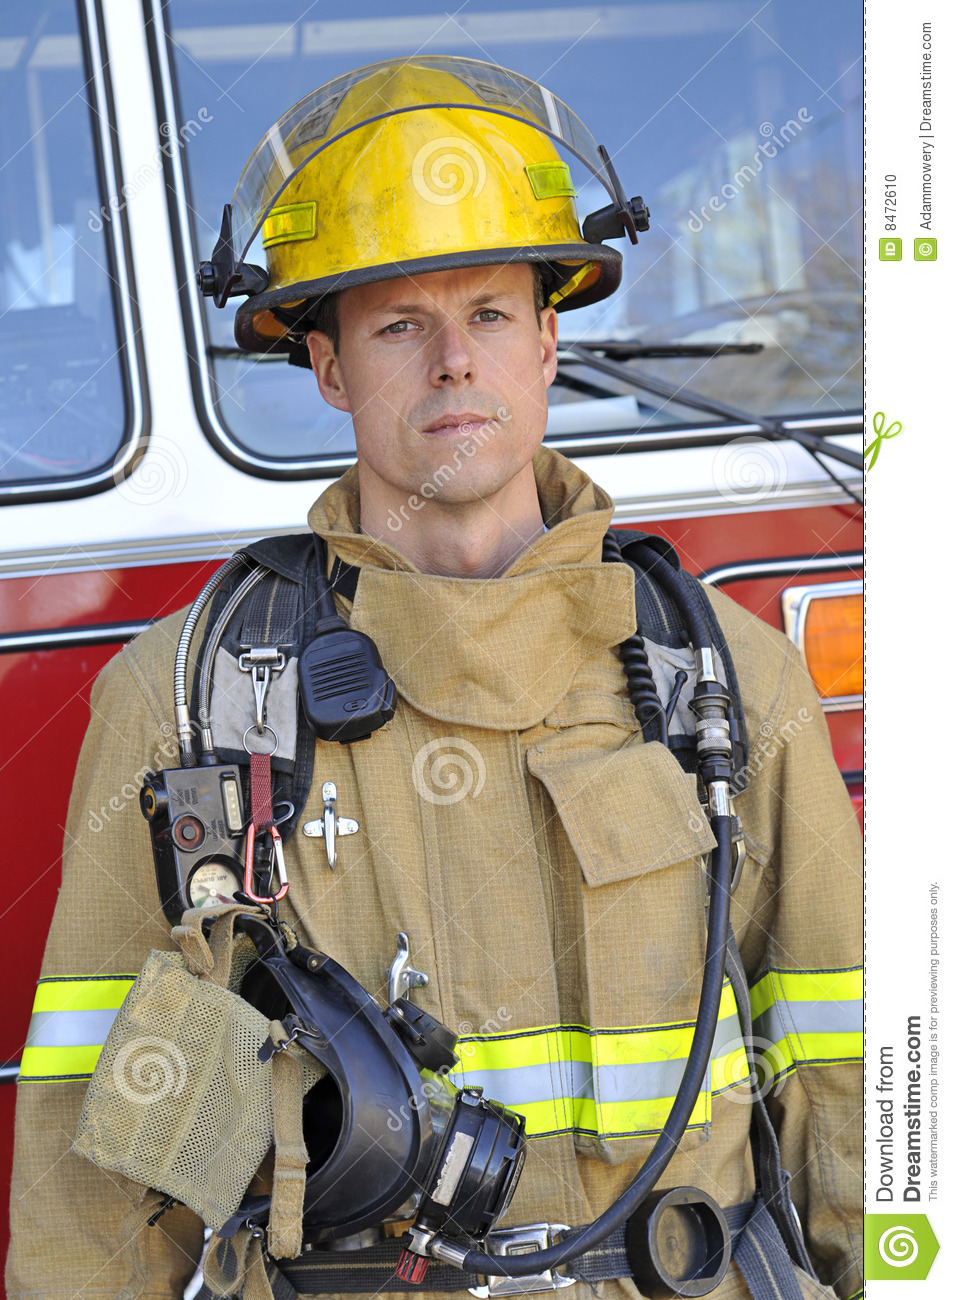 Free Job Alert Portrait Of A Fireman Stock Photo - Image: 8472610